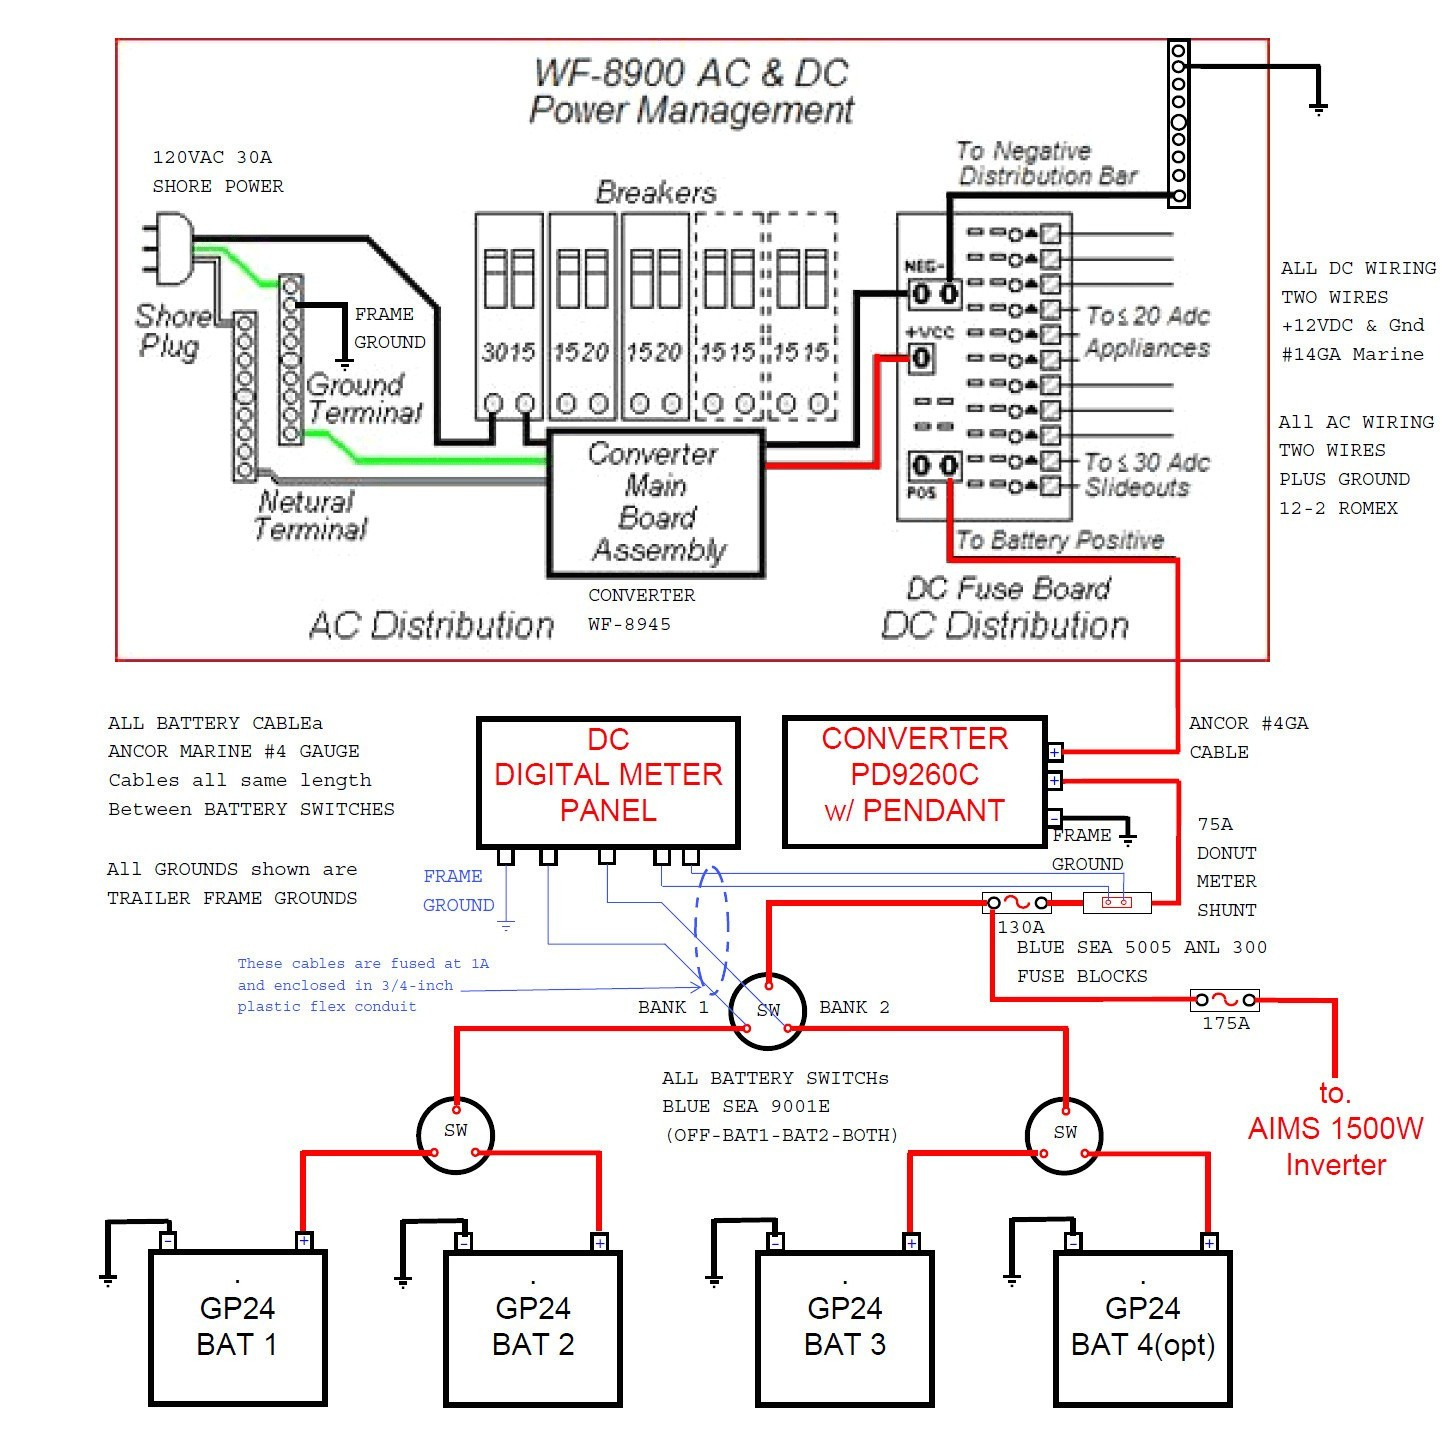 Rv Battery Disconnect Switch Wiring Diagram | Wiring Diagram - Rv Battery Disconnect Switch Wiring Diagram